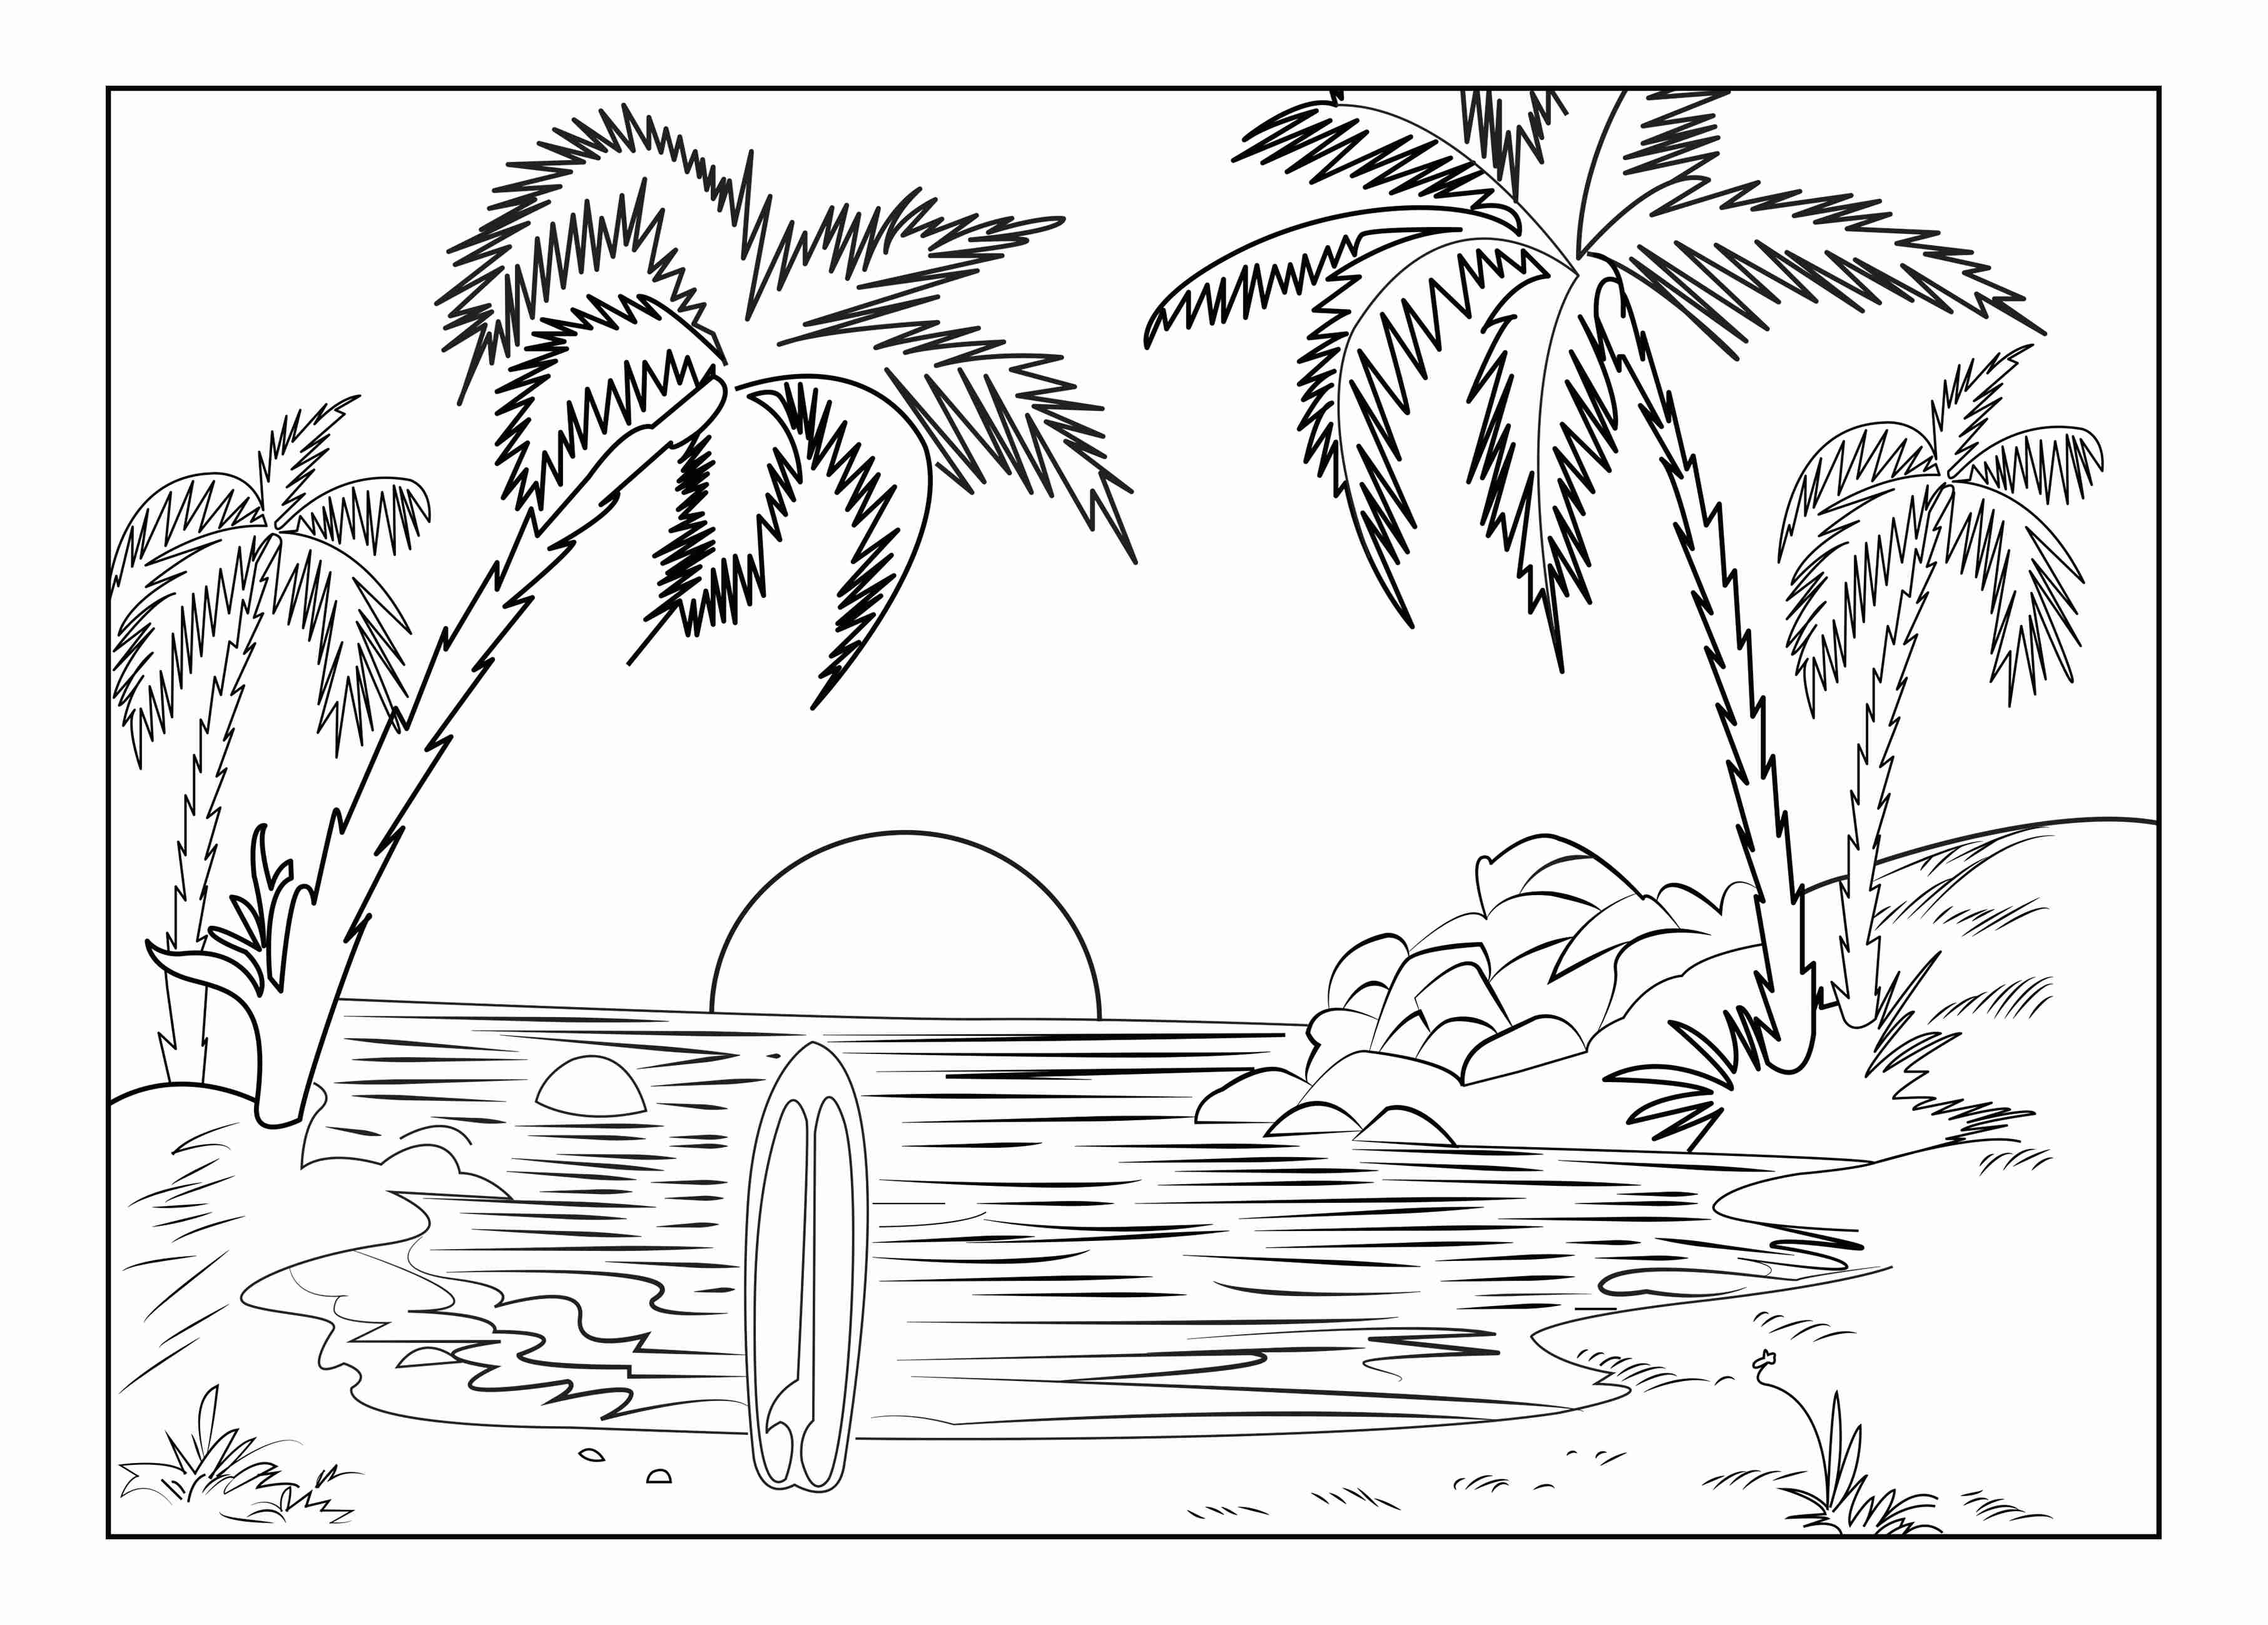 beach sunset coloring pages beach sunrise coloring page embroidery pattern beach art pages sunset coloring beach